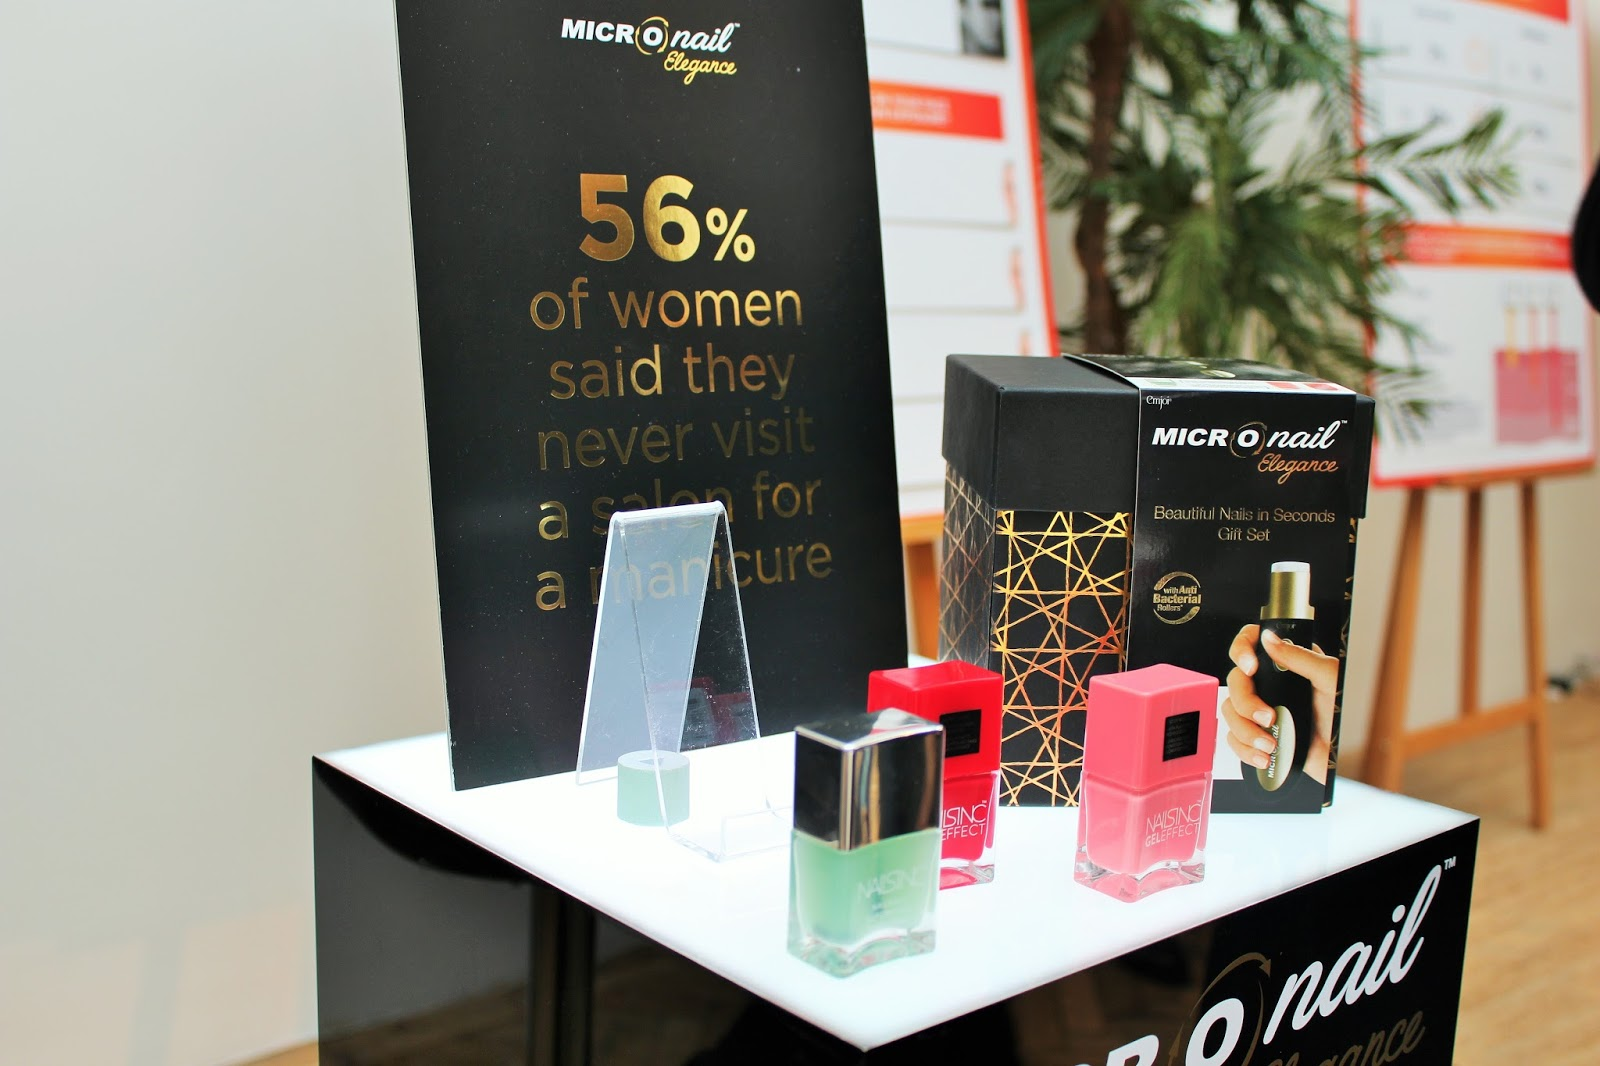 Pegasus Beauty Showcase - MICRO Nail Elegance